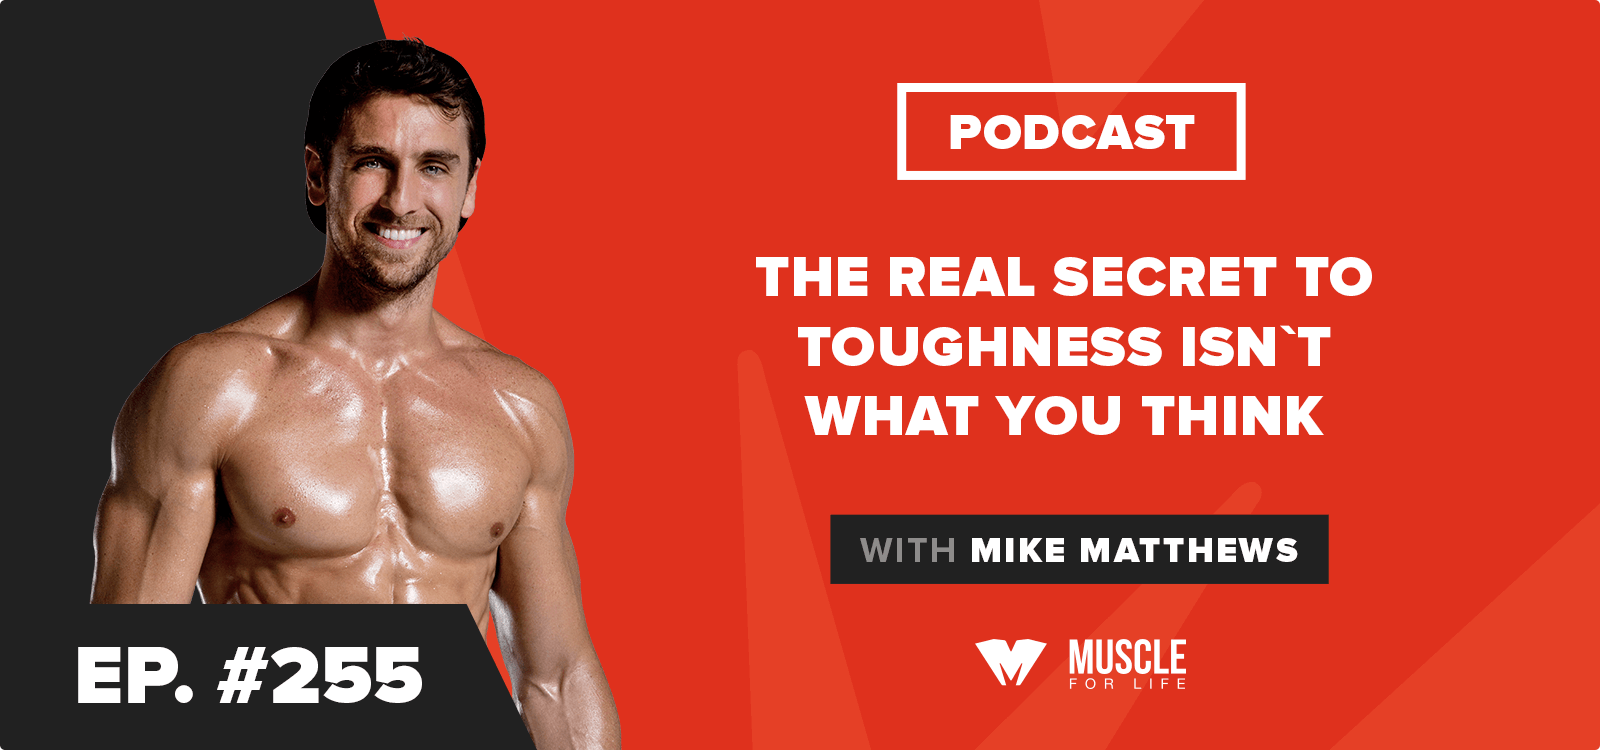 Motivation Monday: The Real Secret to Toughness Isn't What You Think